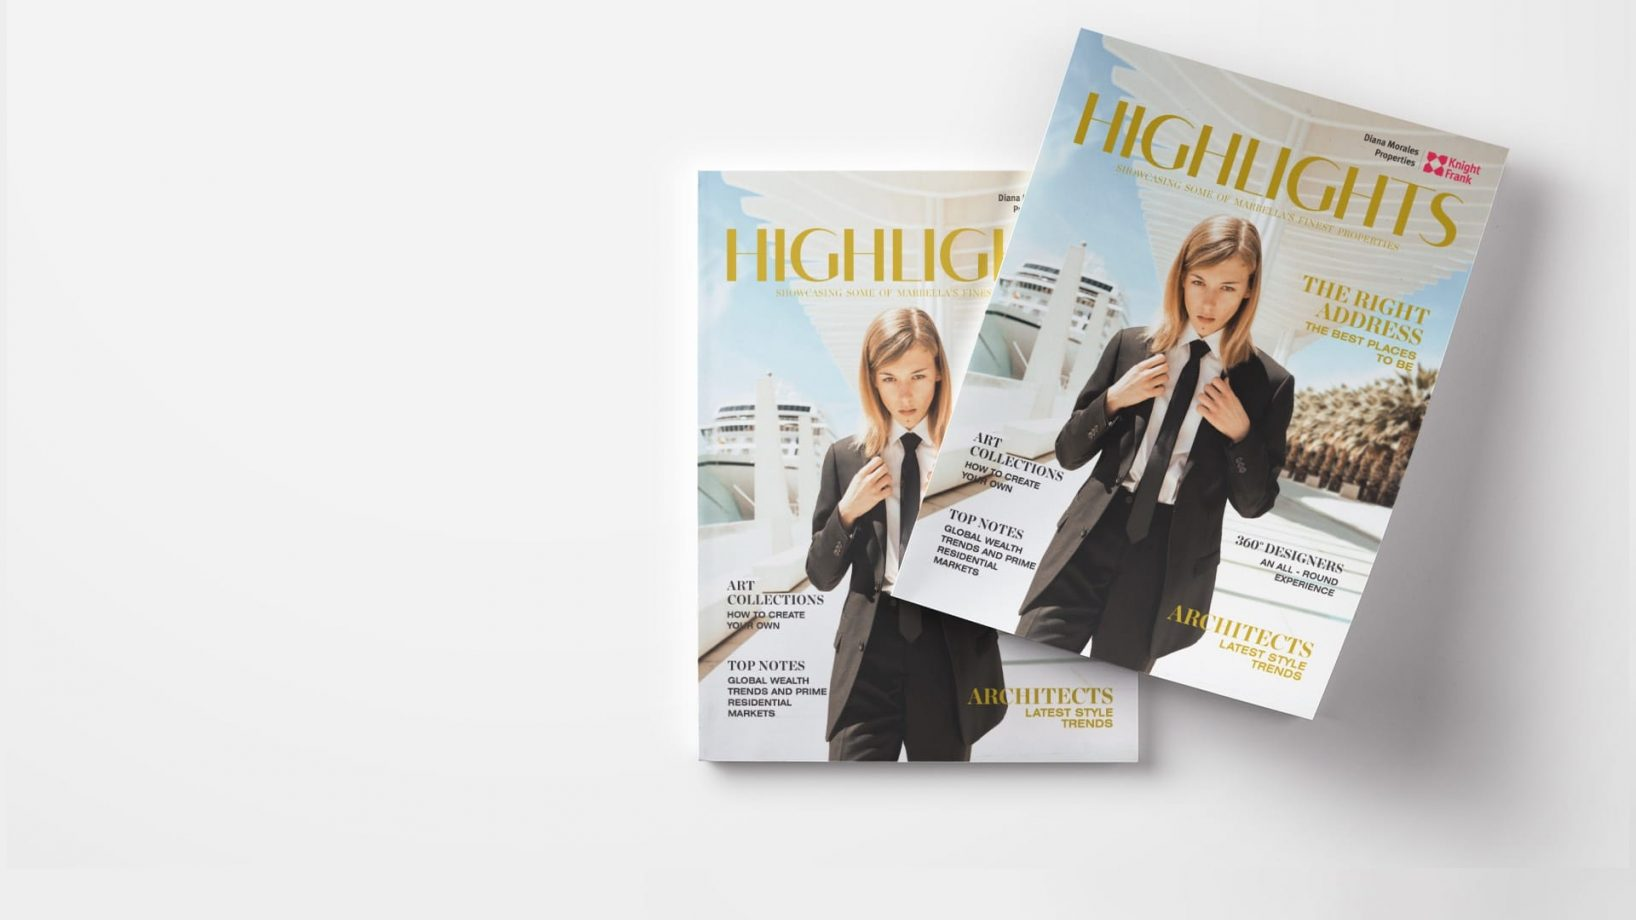 Hochglanzmagazin Highlights 2019 online